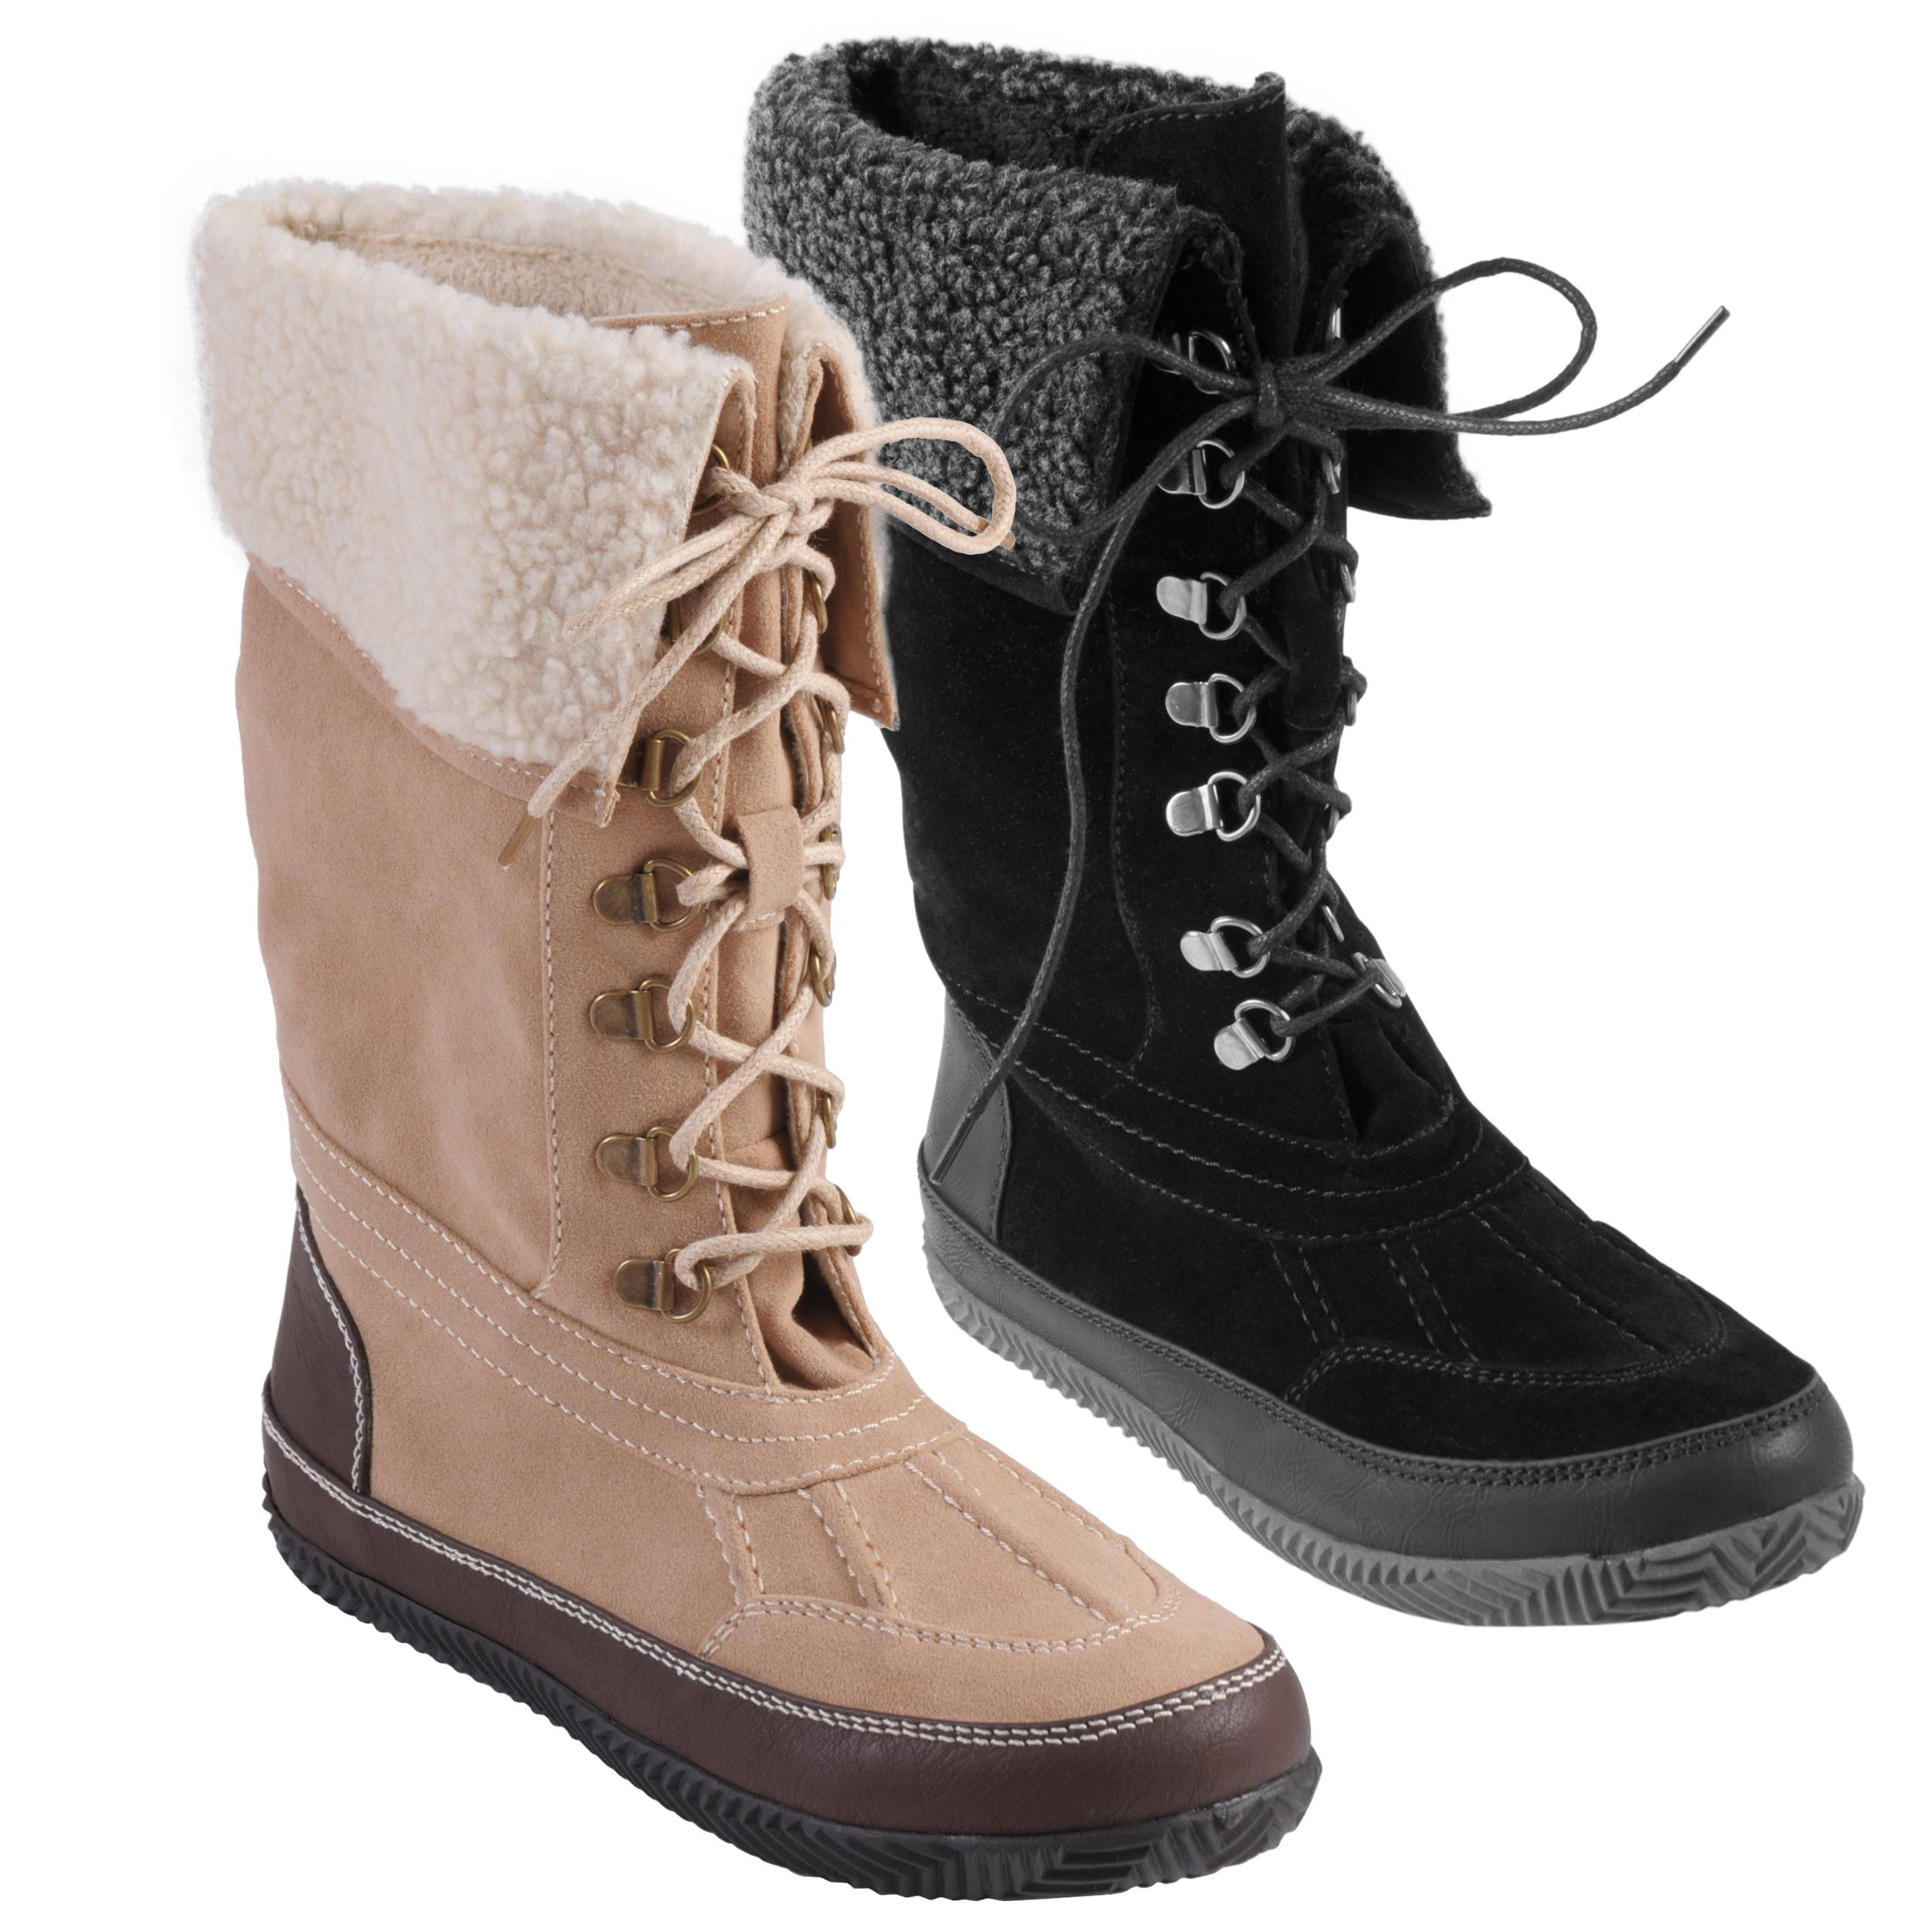 Journee Collection Women's 'Price-12'  Plush Trim Lace-up Boot